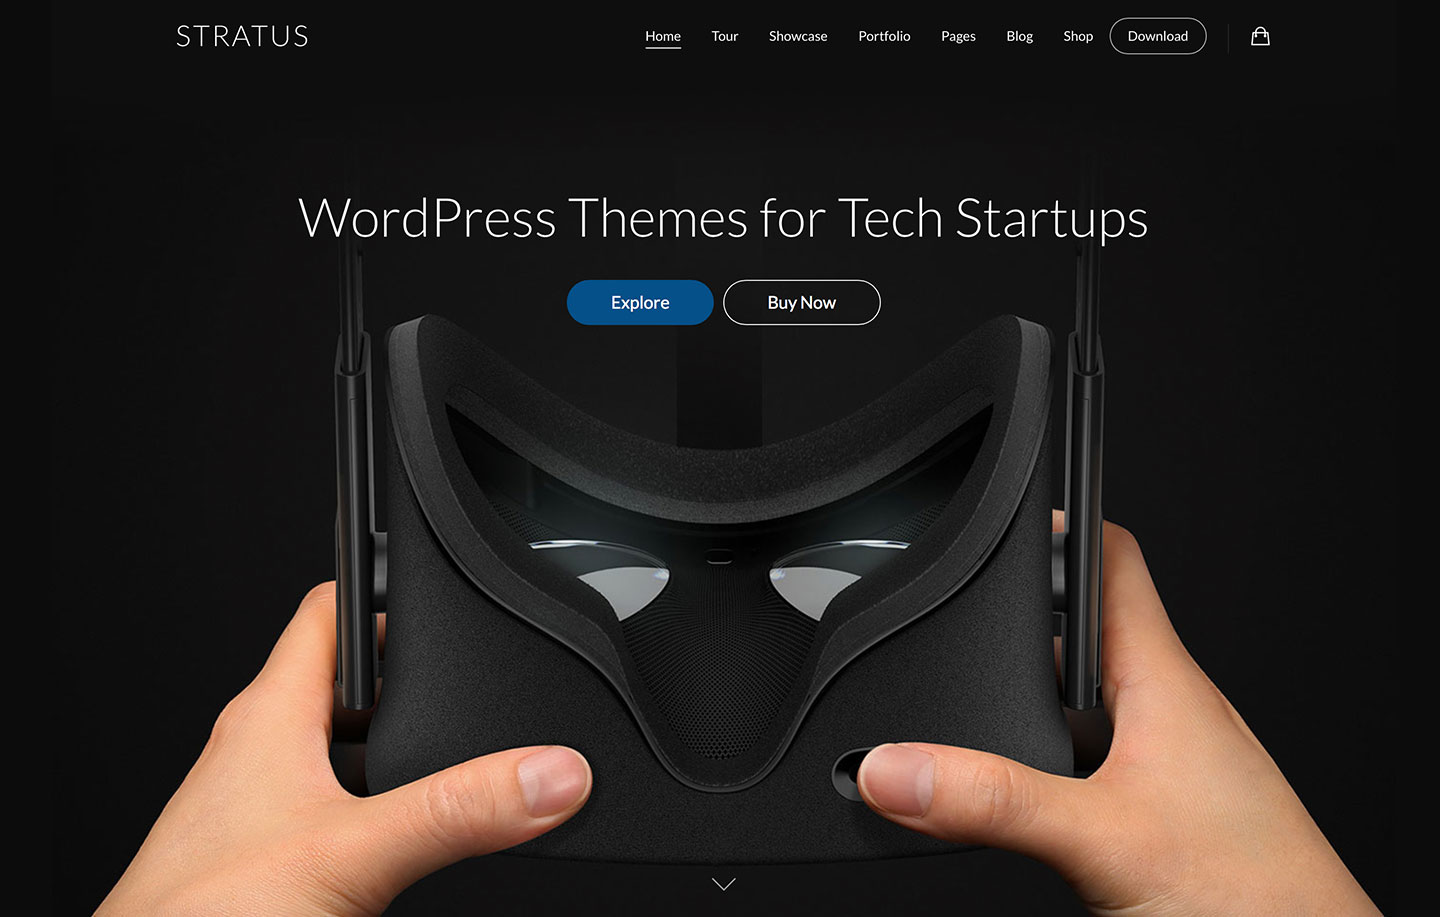 40+ WordPress Themes For IT Companies And Tech Startups 2019